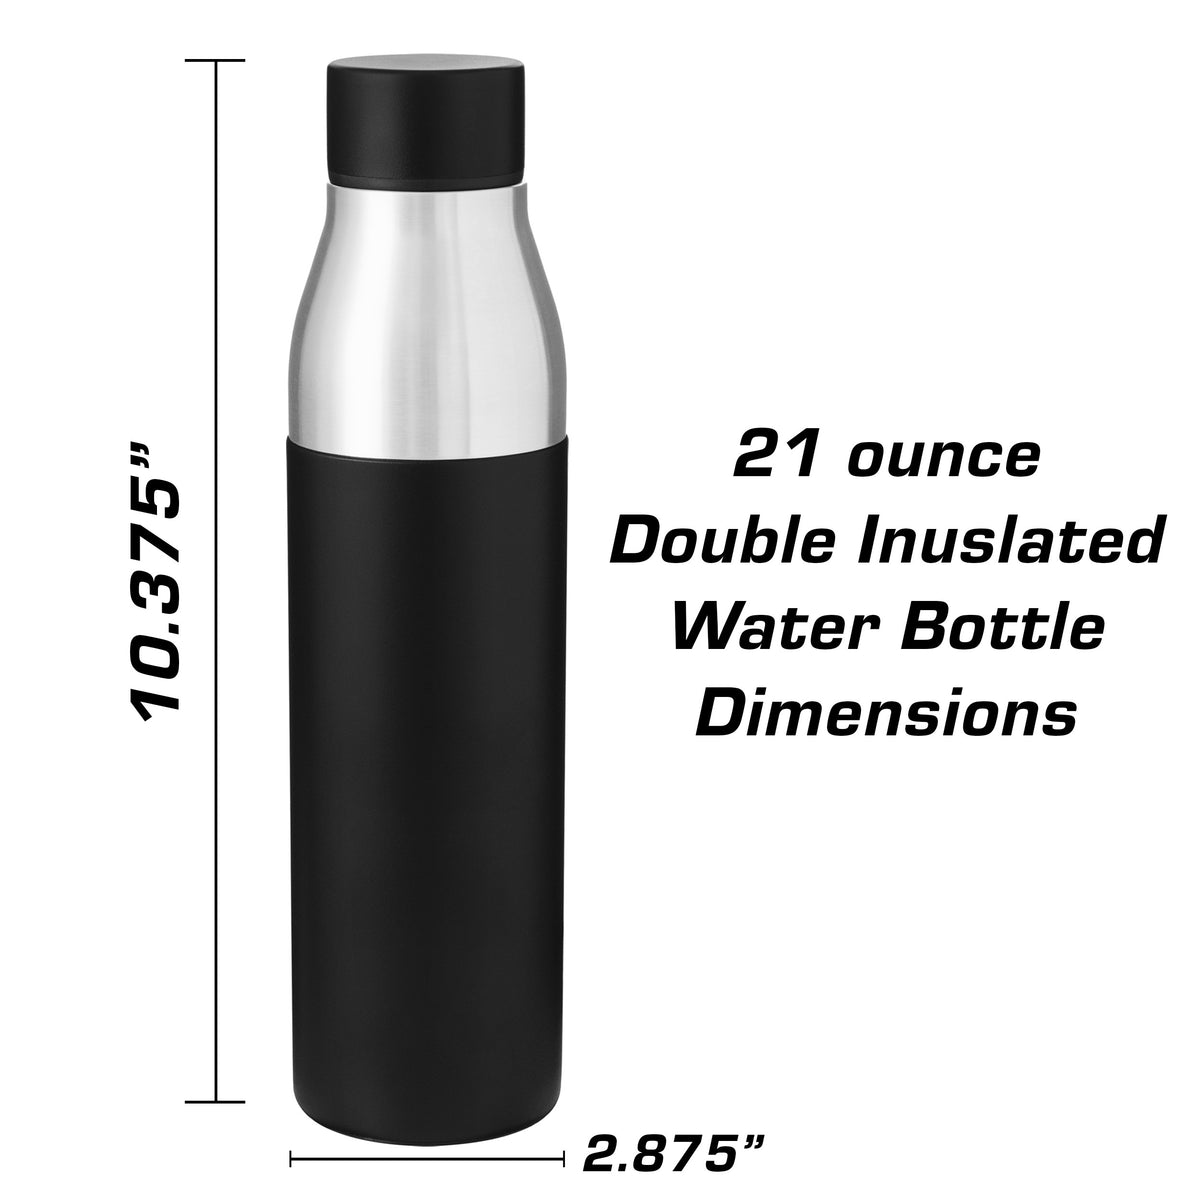 Toyota Supra Mk3 A70 Insulated Stainless Steel Water Bottle - 21 oz